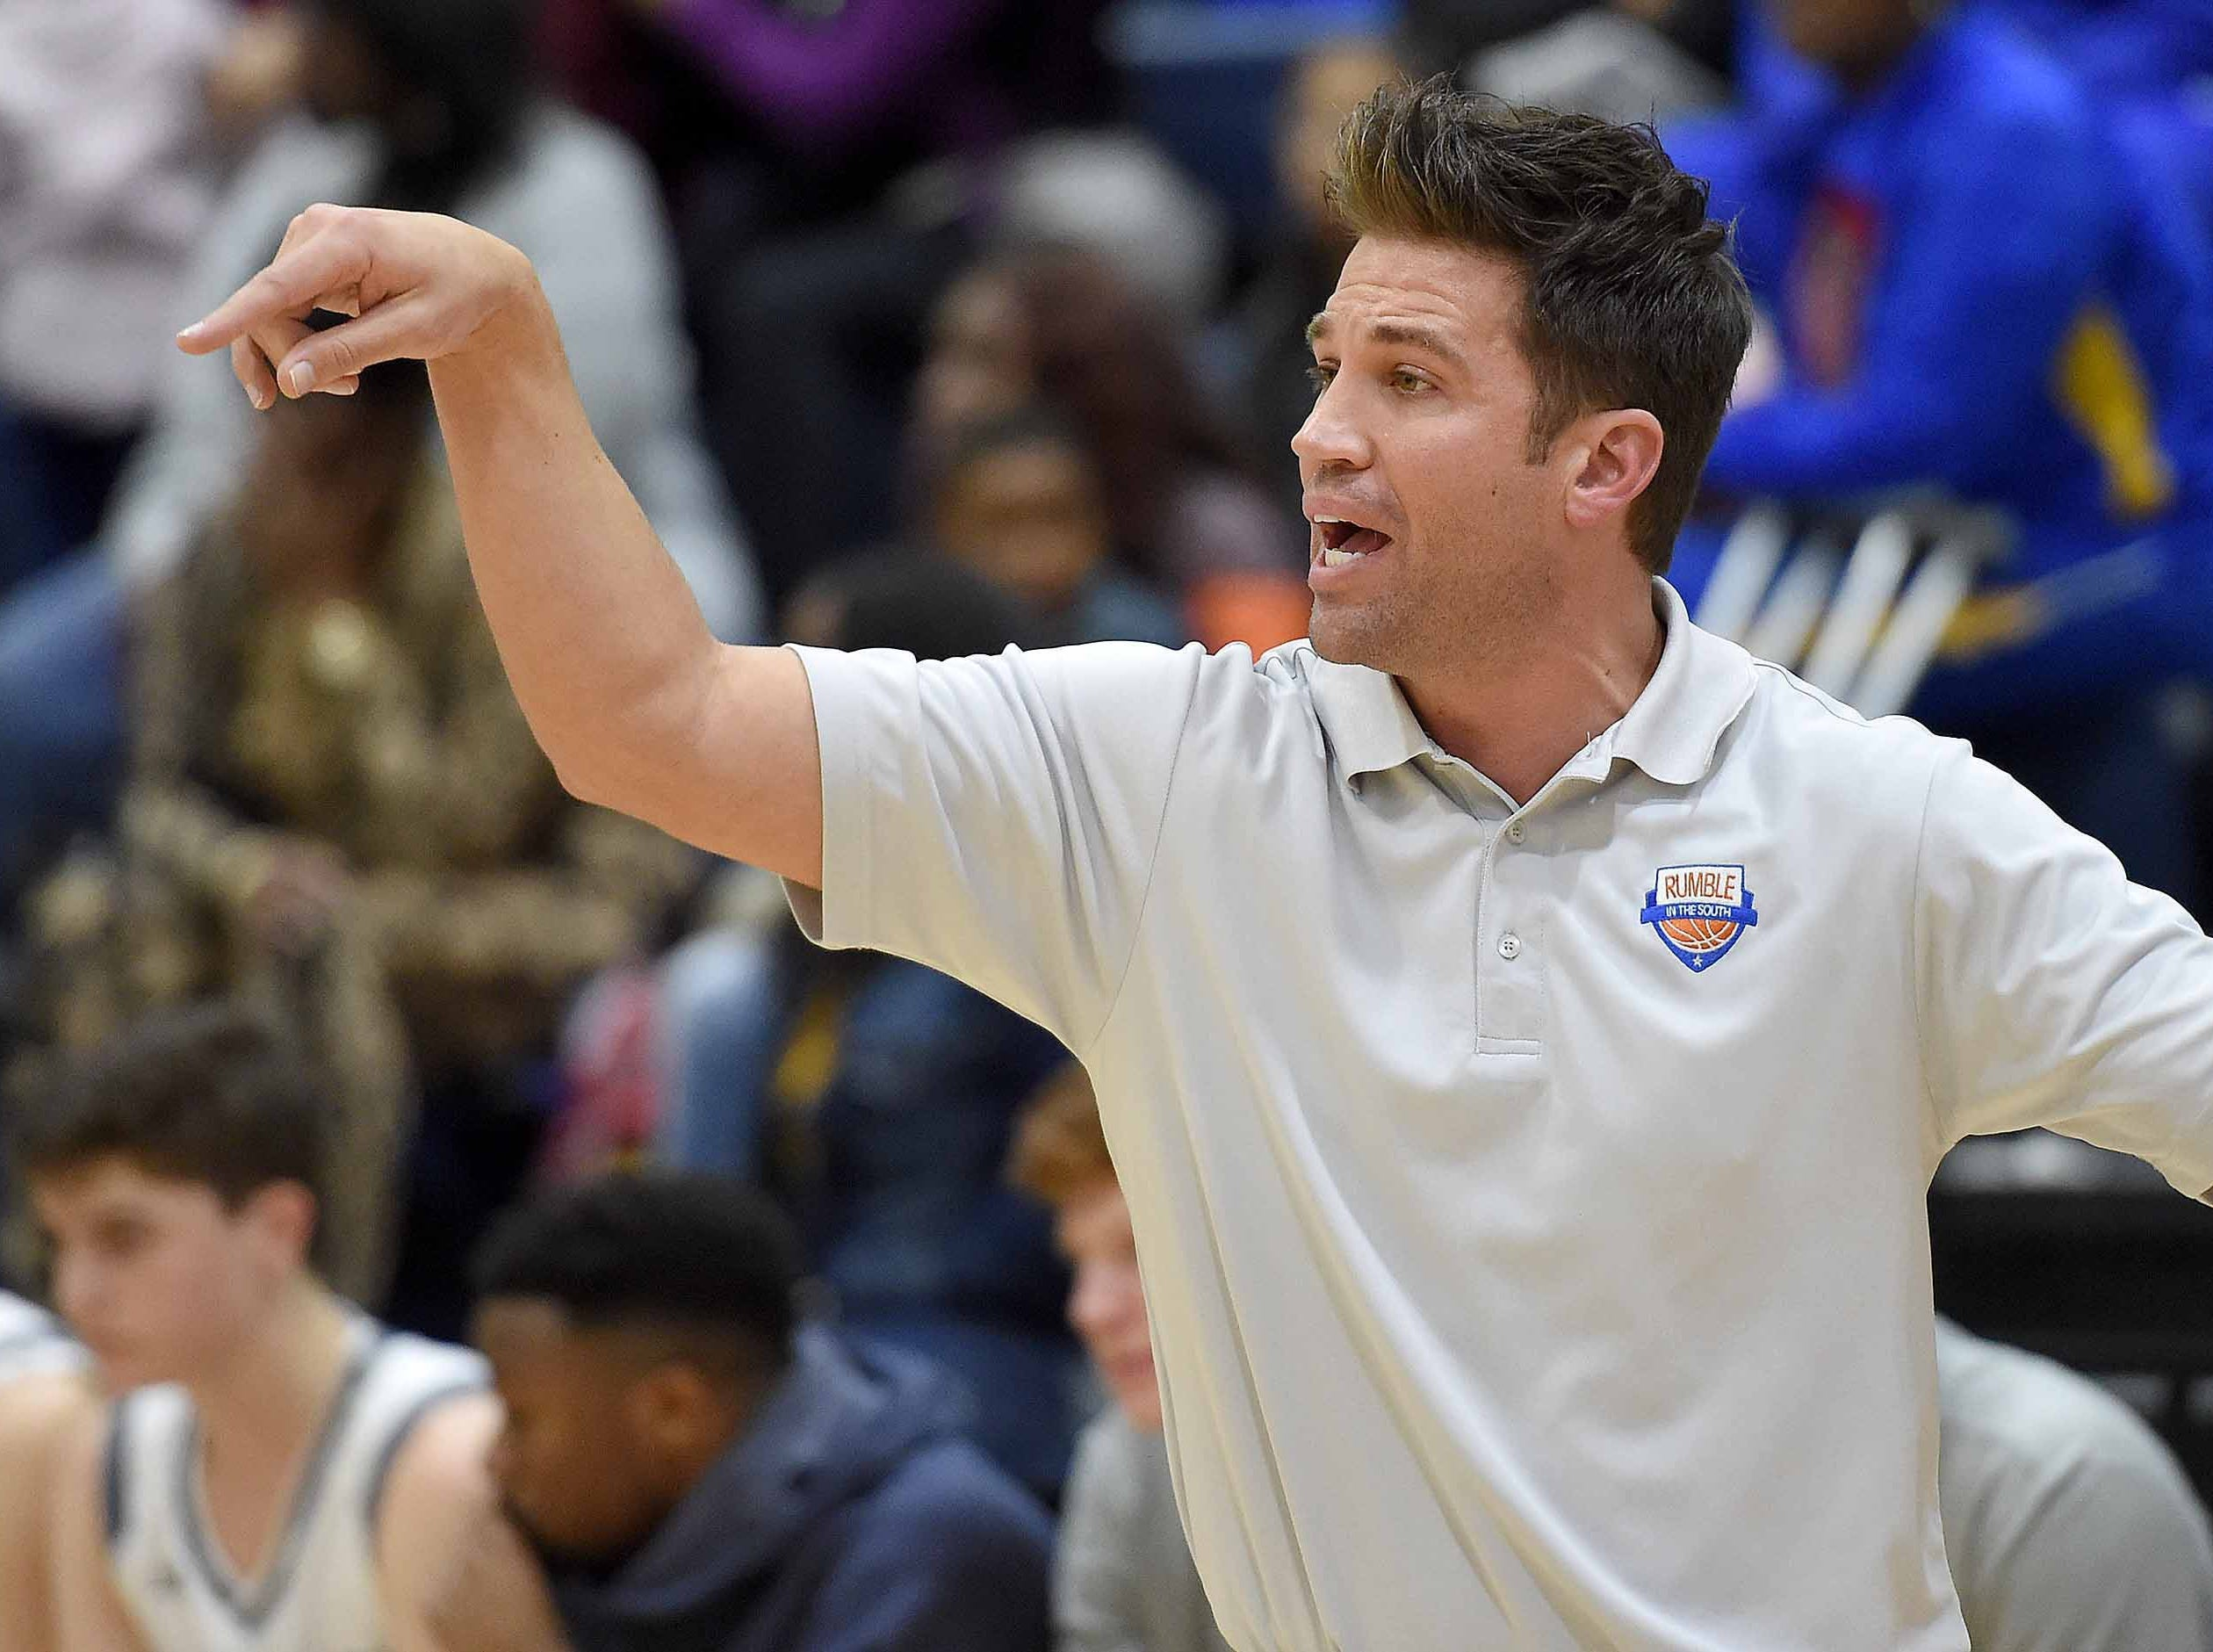 St. Andrew's head coach Brian Cronin calls out a play on Monday, January 21, 2019, at the Rumble in the South high school basketball tournament at St. Andrew's Episcopal School in Ridgeland, Miss.